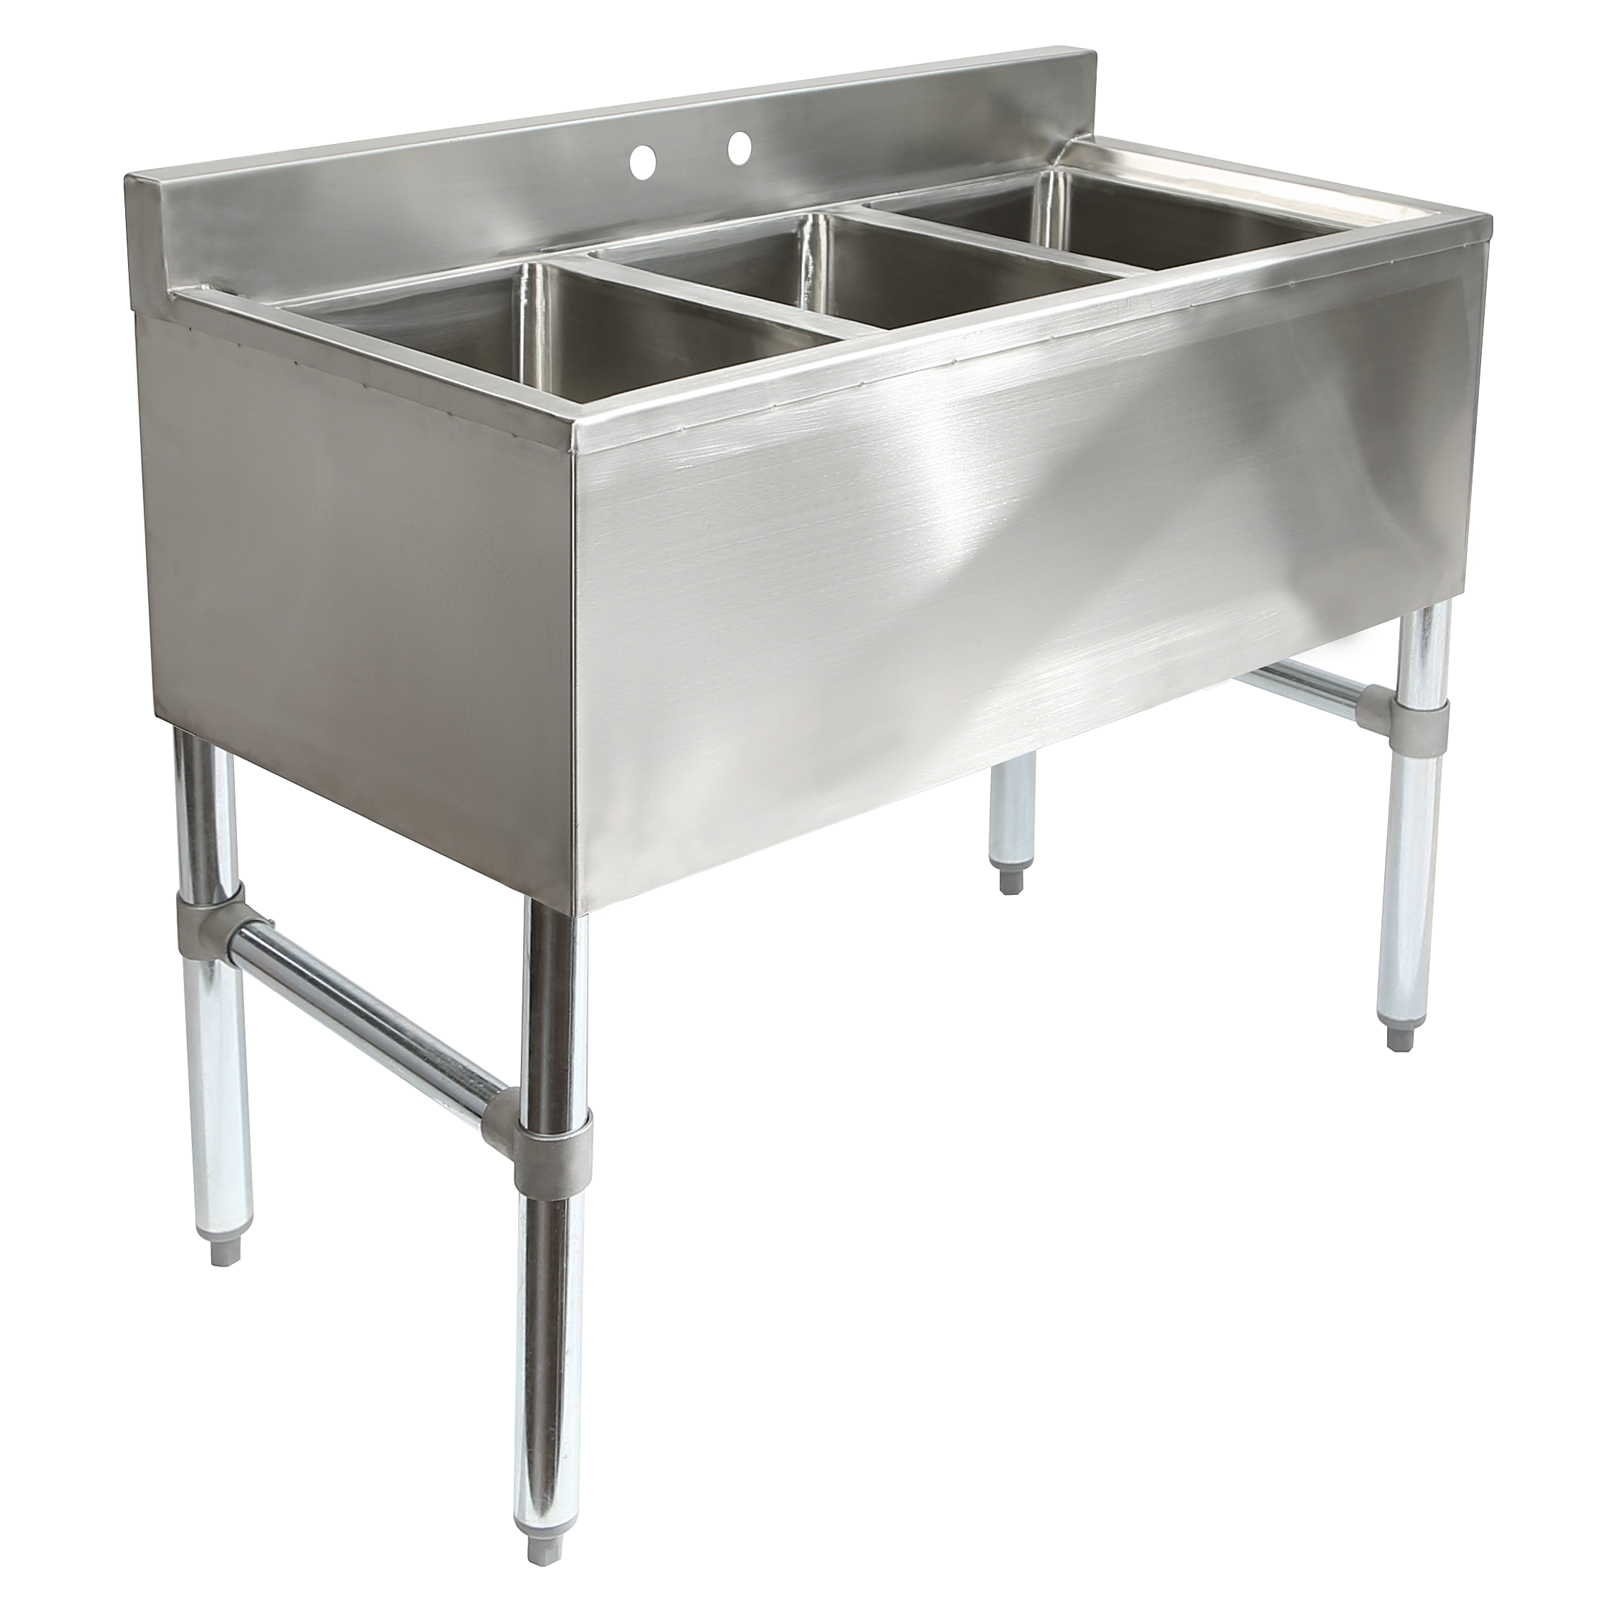 Gridmann 3 Compartment NSF Stainless Steel Commercial Underbar Sink by Gridmann